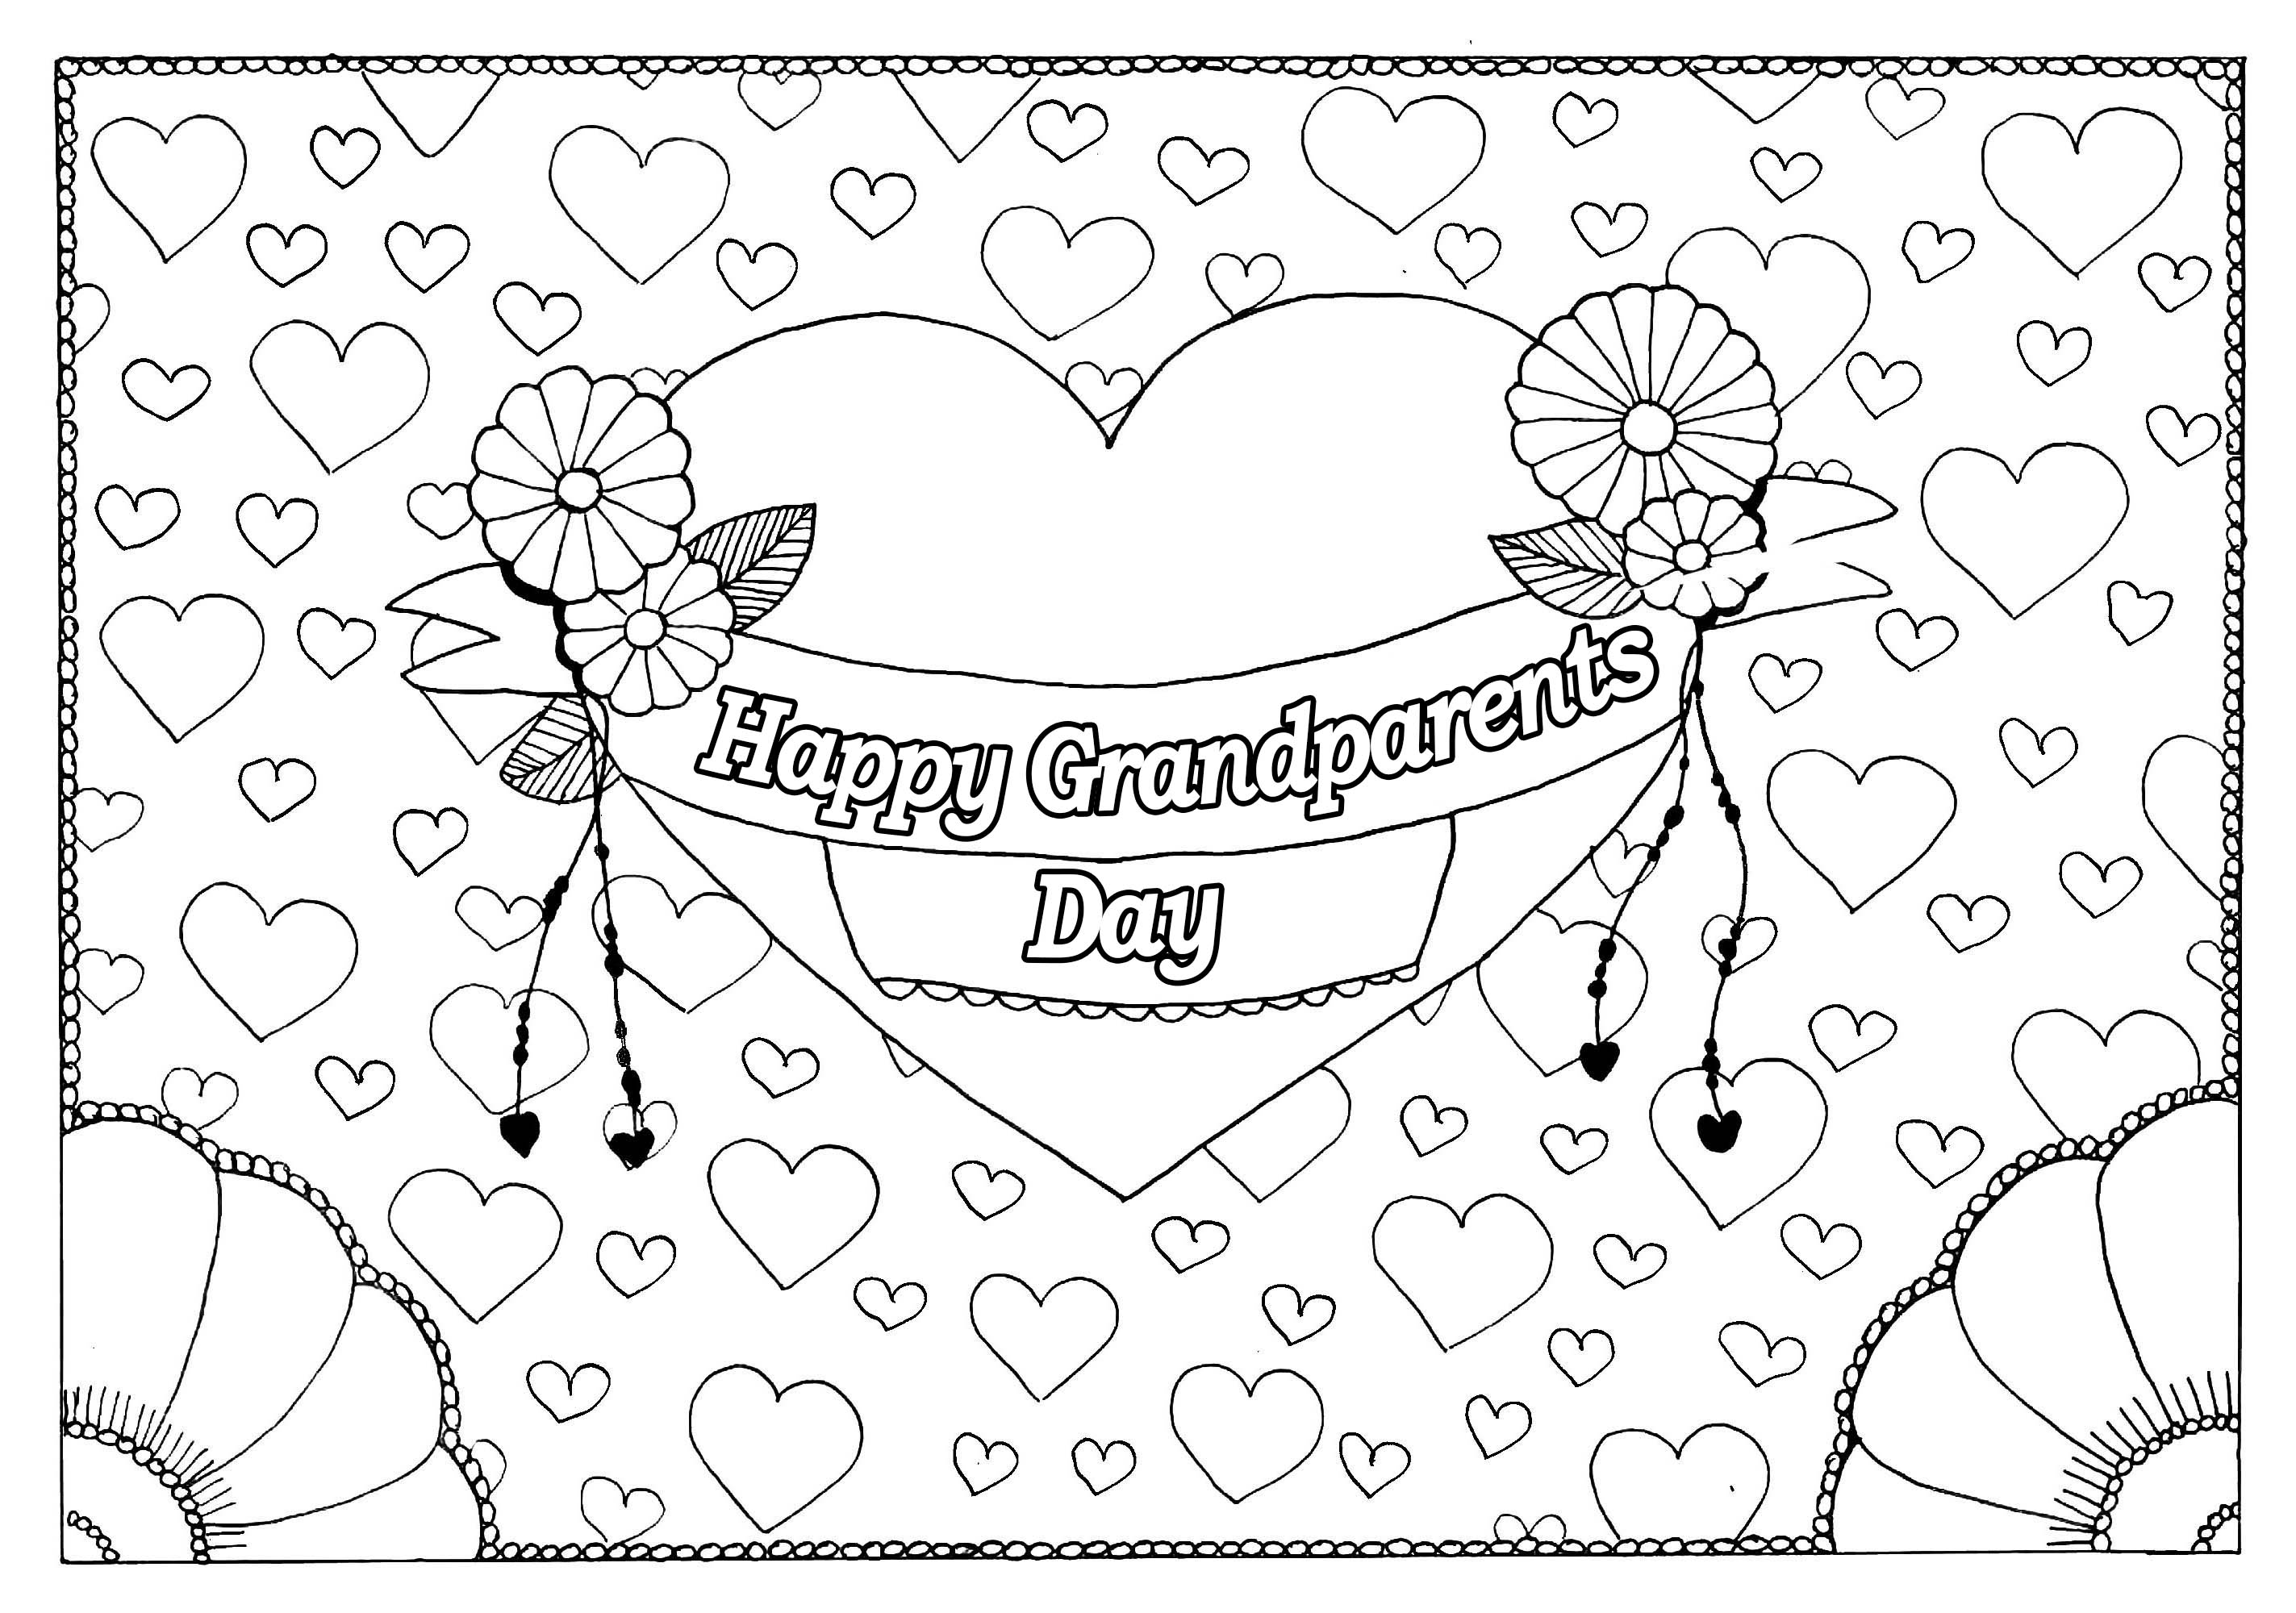 grandparents day coloring pages Grandparents day 5   Gr&parents Day Adult Coloring Pages grandparents day coloring pages